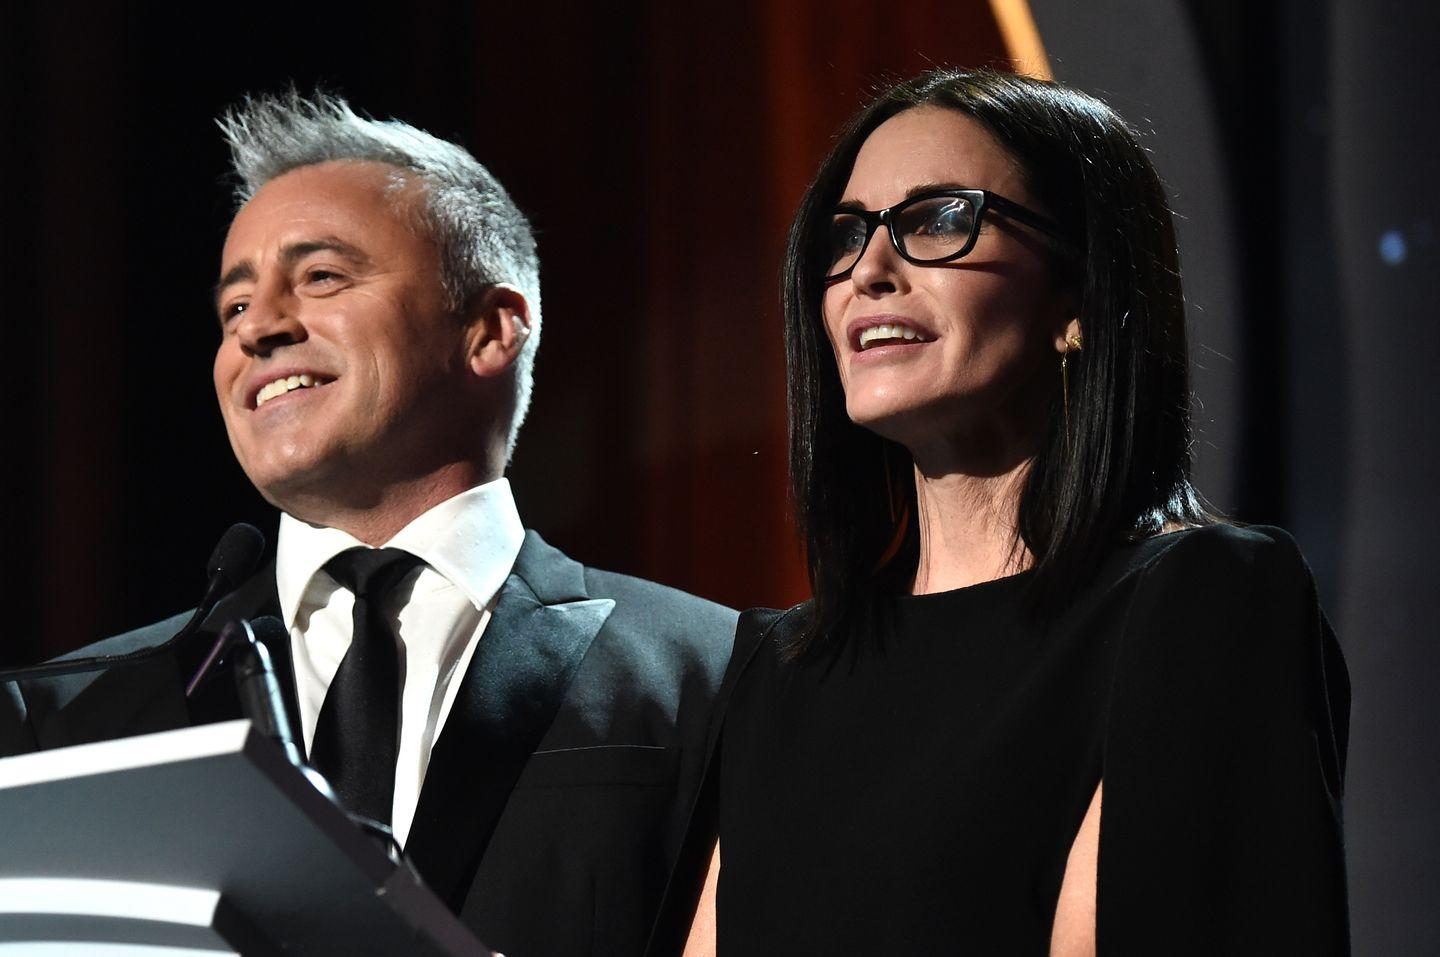 <p>Matt and Courtney Cox present onstage at the Writers Guild Awards in LA.</p>